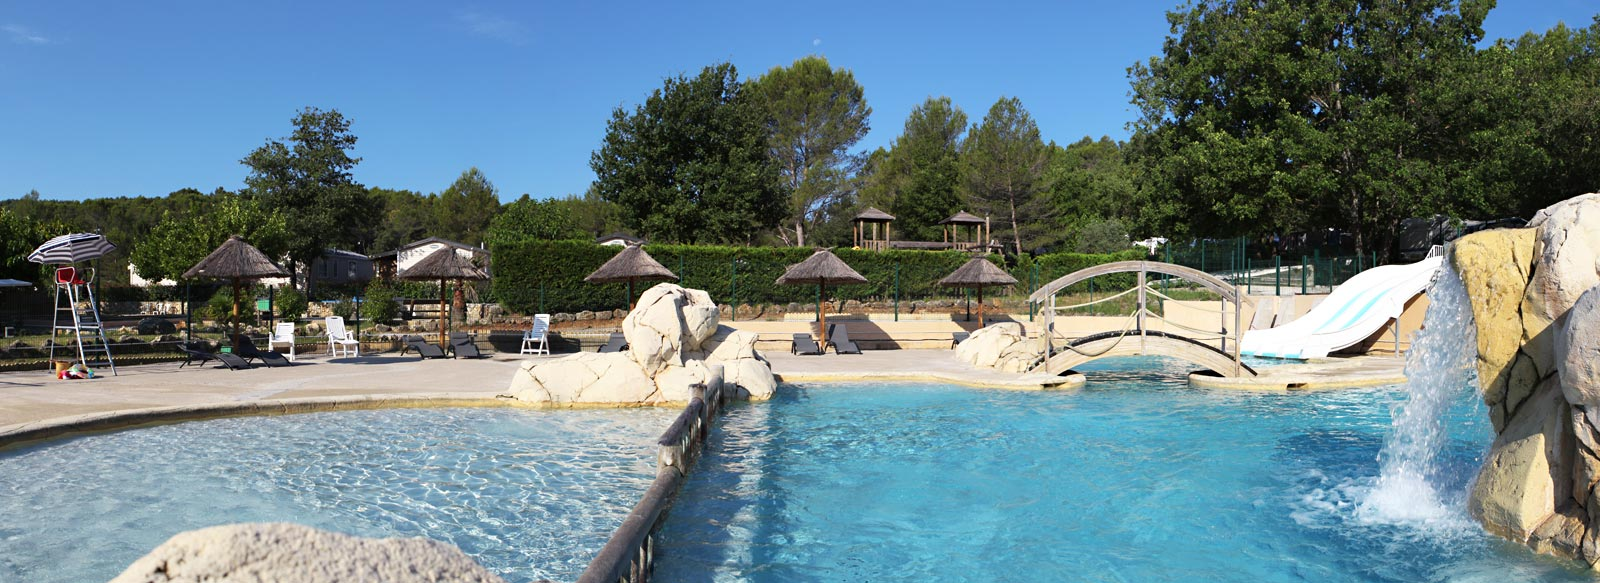 Site officiel camping les blimouses callas camping var for Camping var piscine